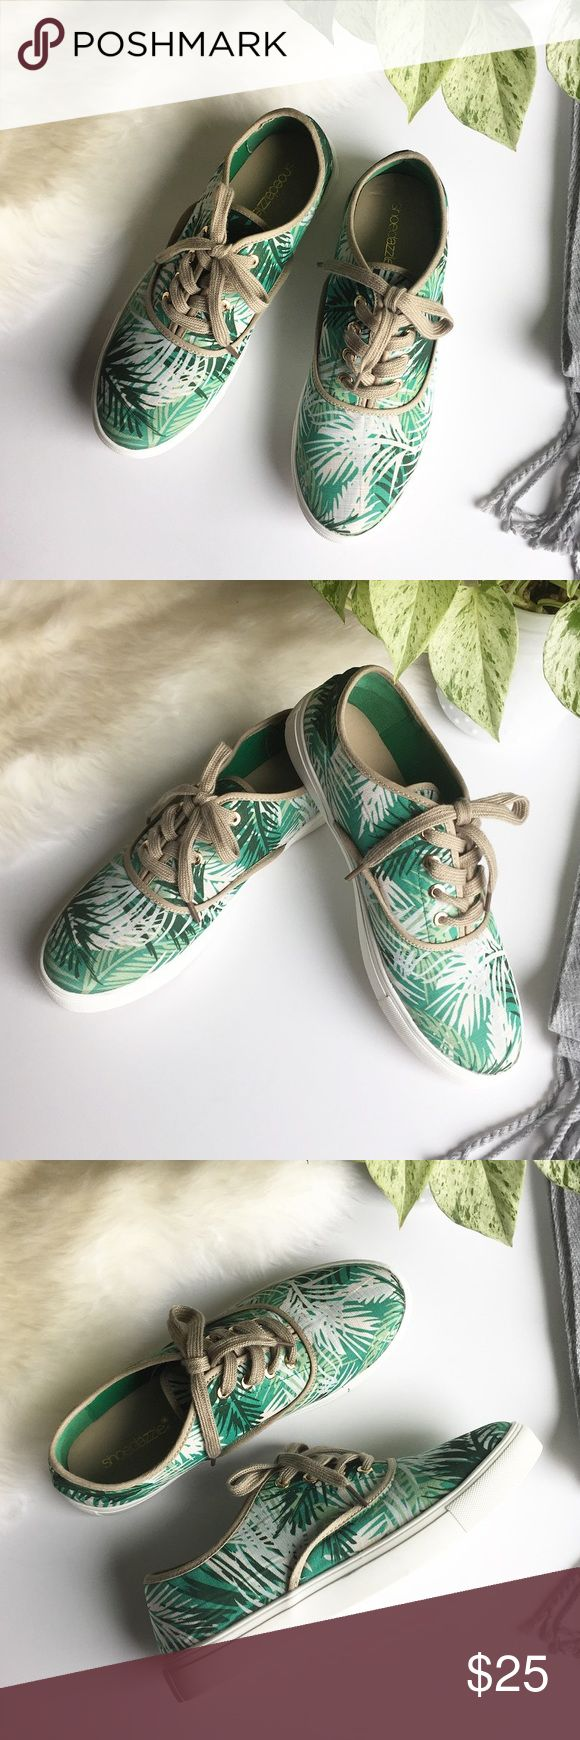 - SHOE DAZZLE - Palm Print Sneakers Classsic lace up sneakers get refreshed with a beach palm print so you can always be on the beach! Excellent pre-loved condition, no flaws.  🔸Bundle & Save 15% on 2+ items!                         🔸Free gift on purchases over $100!                    🙅🏼No trades / selling off of Posh.                          🌟Offers always welcome!🌟 (low-ball offer = counteroffer 😊) Shoe Dazzle Shoes Sneakers